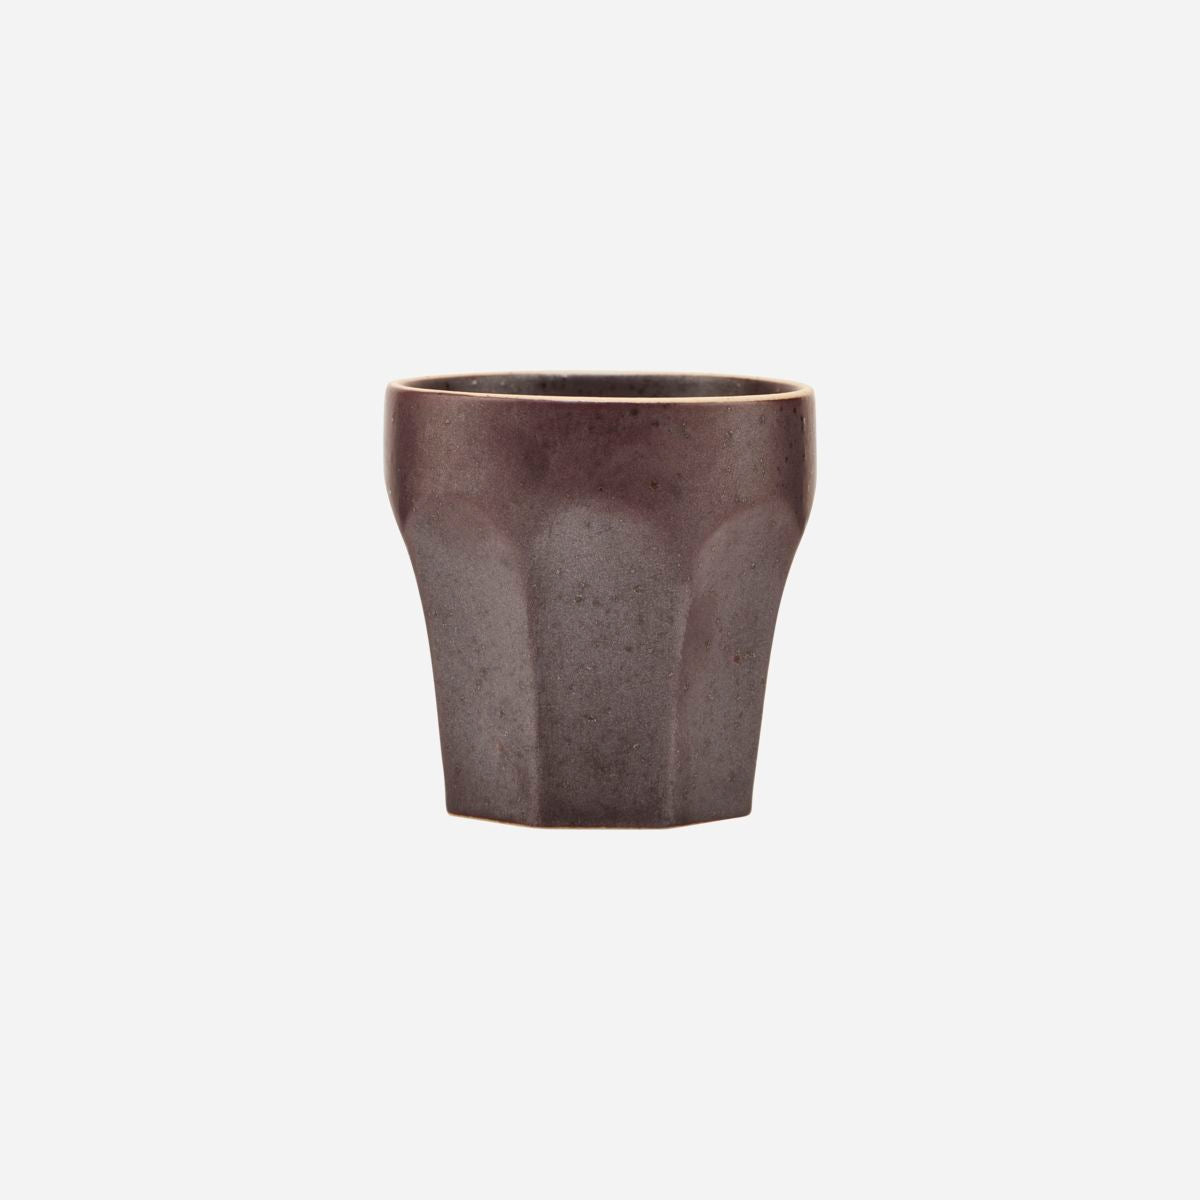 House Doctor Espresso Cup, Berica, Brown - Scandi Minimal